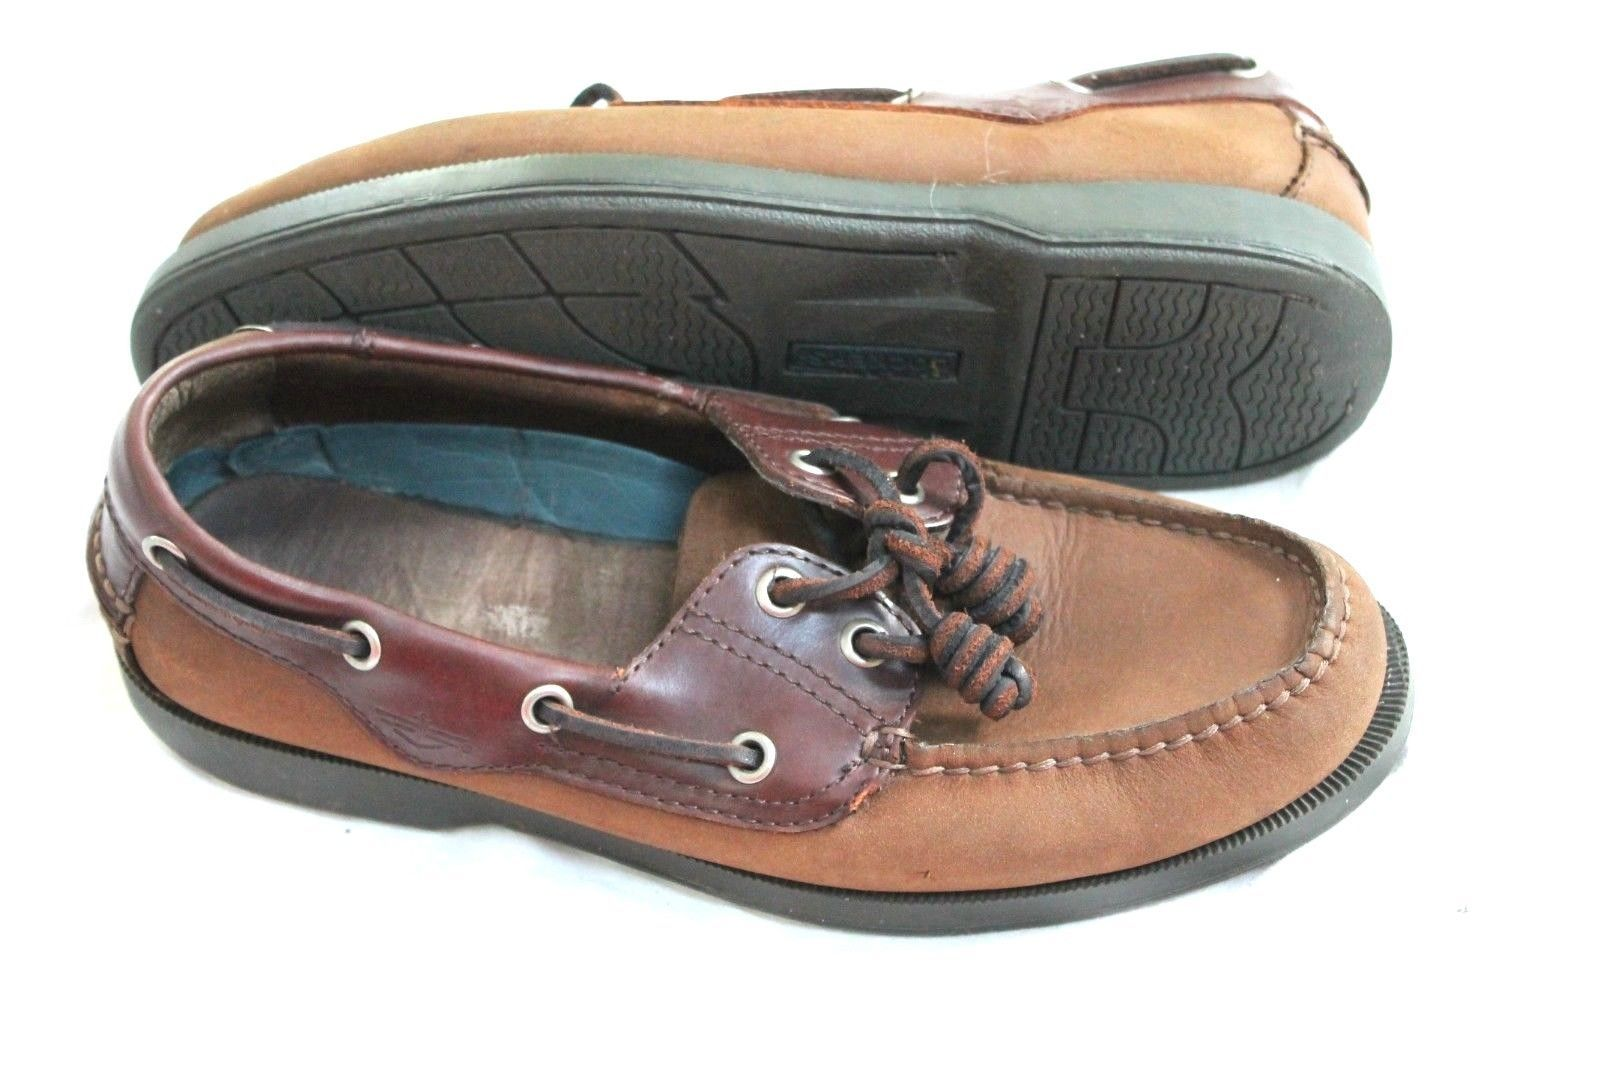 Primary image for Dockers Boat Shoes  Men's Size 7 M  Brown Shoes